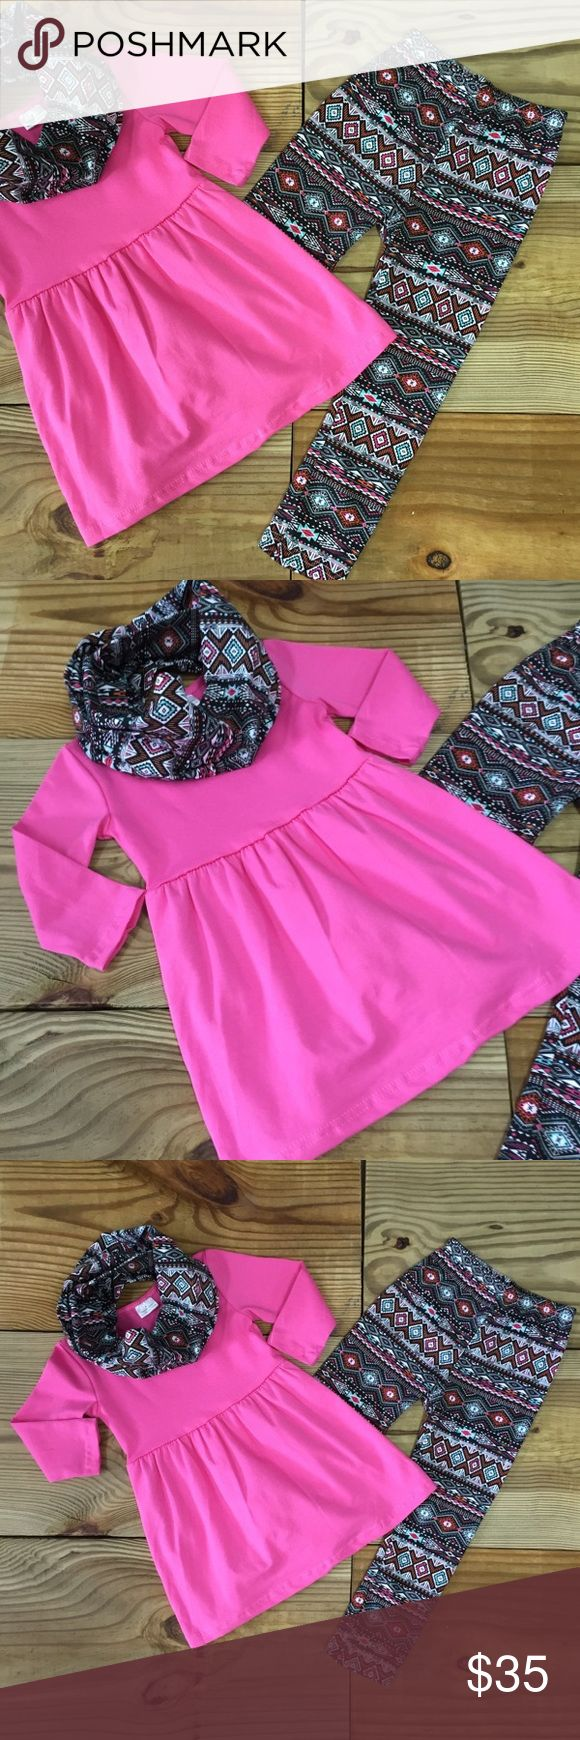 3-Pc Hot Pink Aztec Infinity Scarf Outfit Our girls hot pink aztec scarf outfit includes the tunic top, Aztec leggings, and matching infinity scarf. The tunic can also be worn as a dress. Super Trendy & So Comfy! 97% Cotton 3% Spandex TRUE TO SIZE Fast Shipping! Moxie Girl Matching Sets